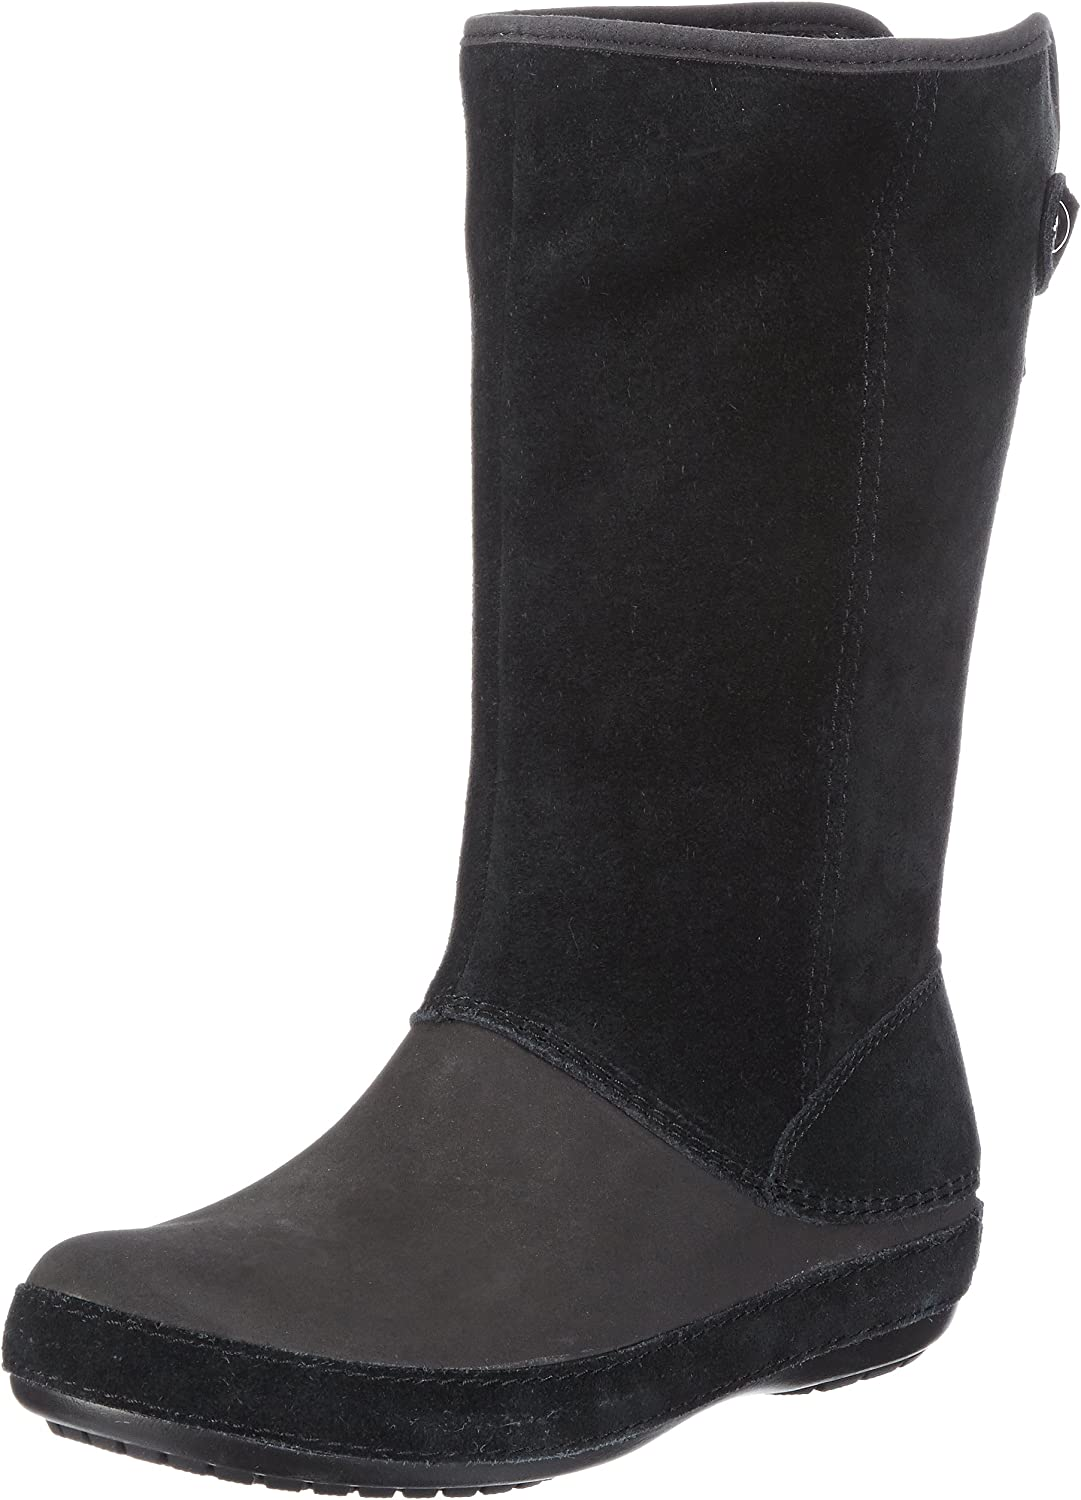 Crocs Women's Berryessa Tall Suede Boot